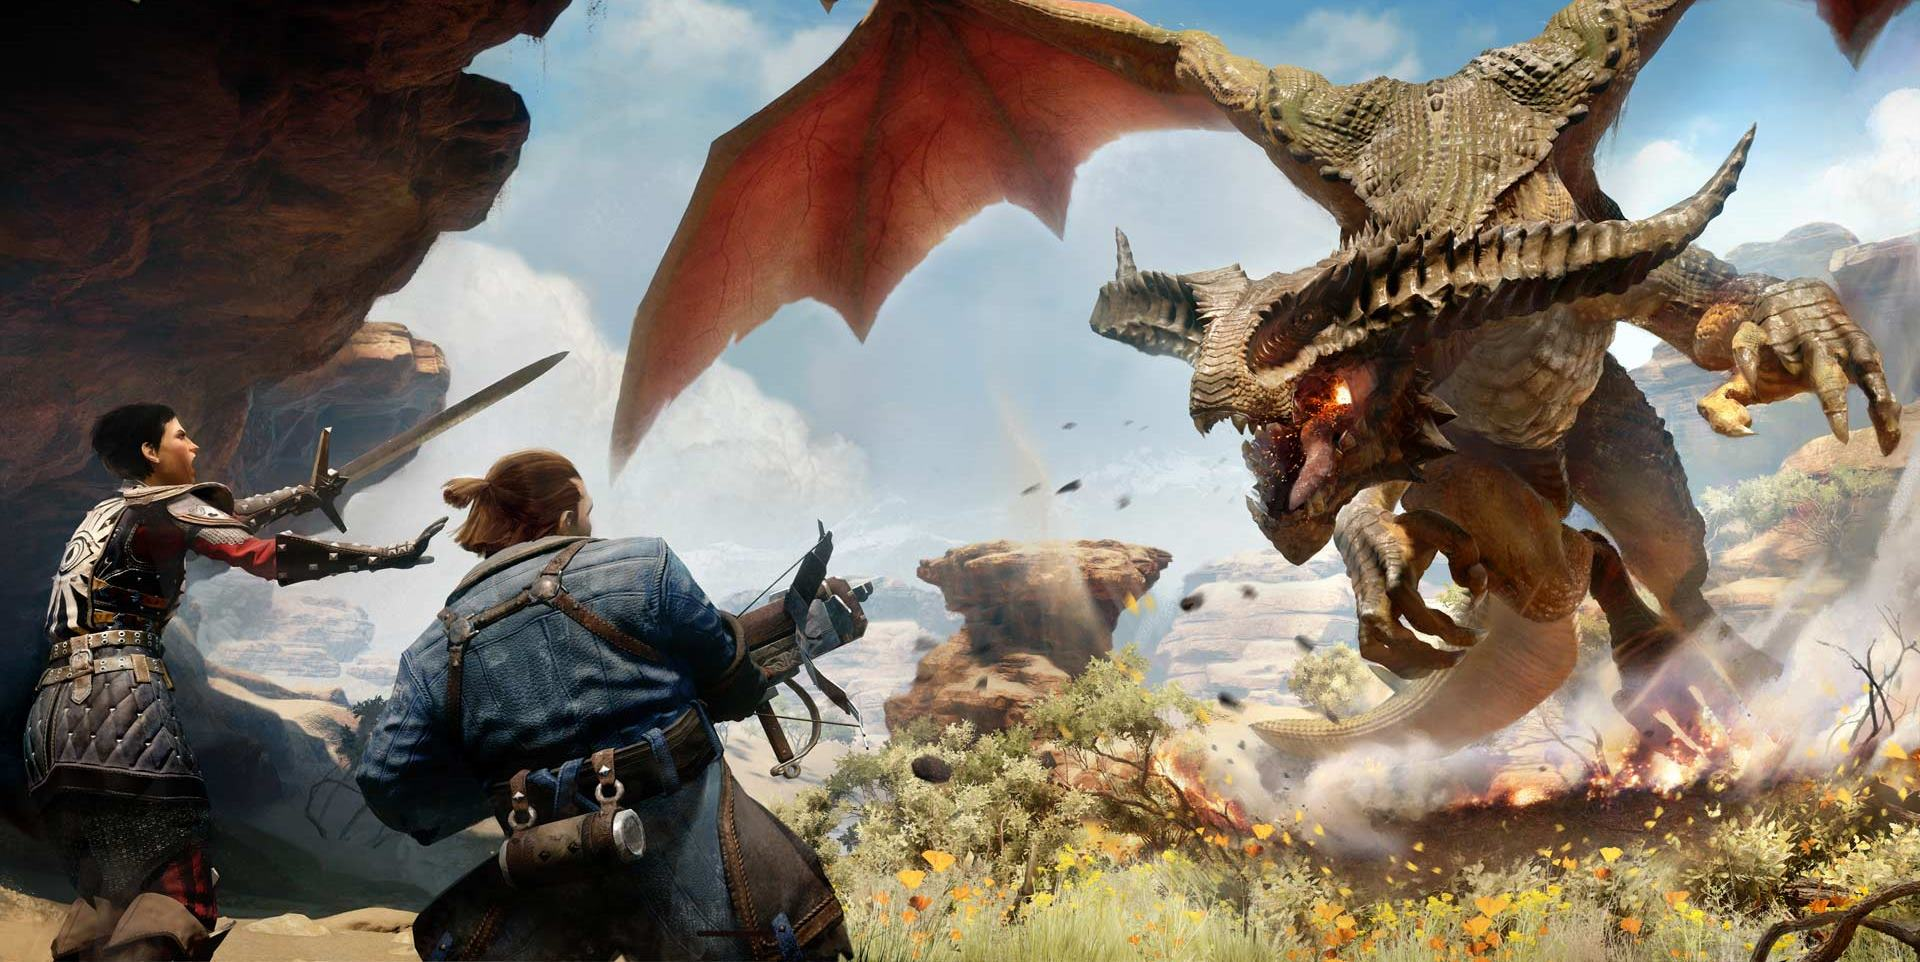 Dragon Age writer David Gaider is working on a secret project for BioWare